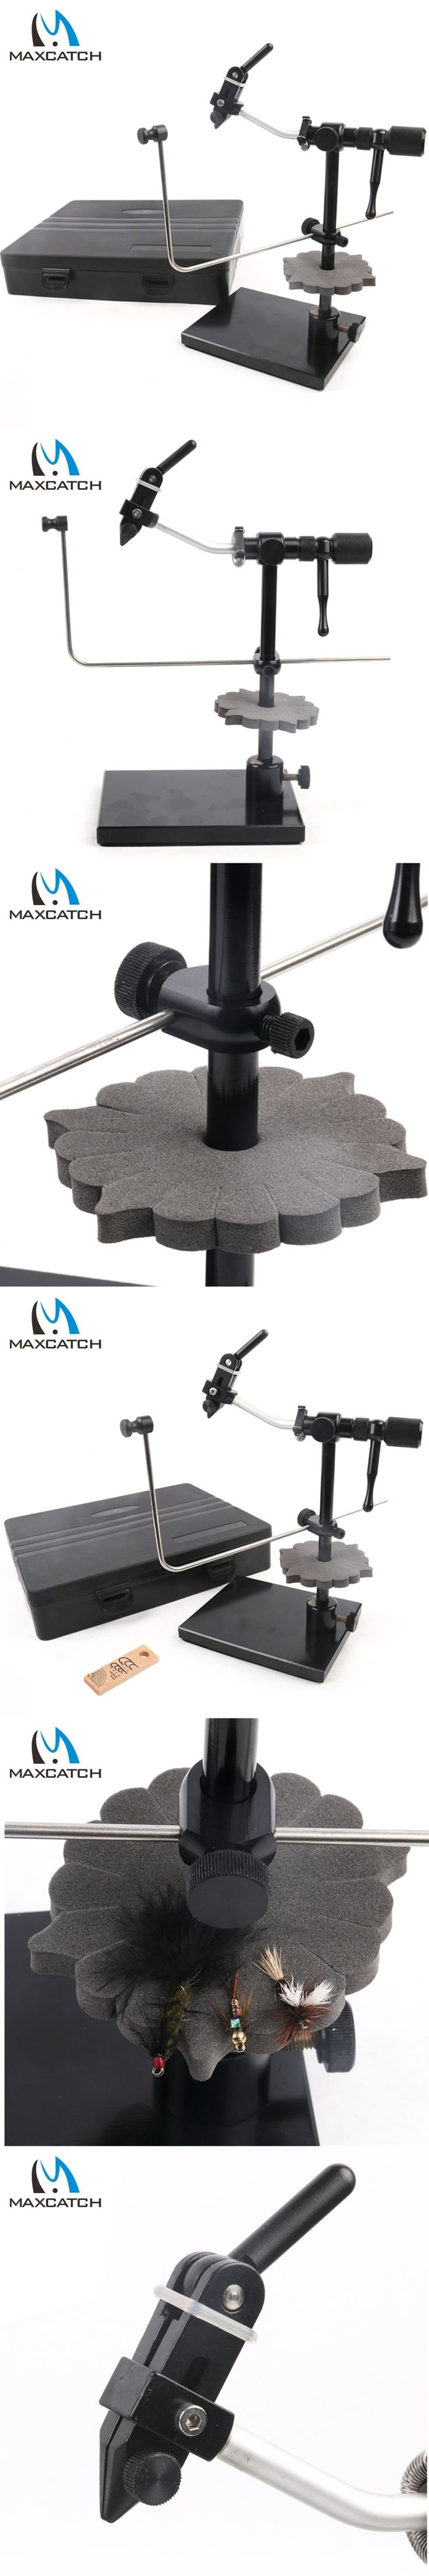 Maxcatch New Iron Rotary Fly Tying Vise With Heavy Duty Base Fly Hook Tool with Hackle Gauge